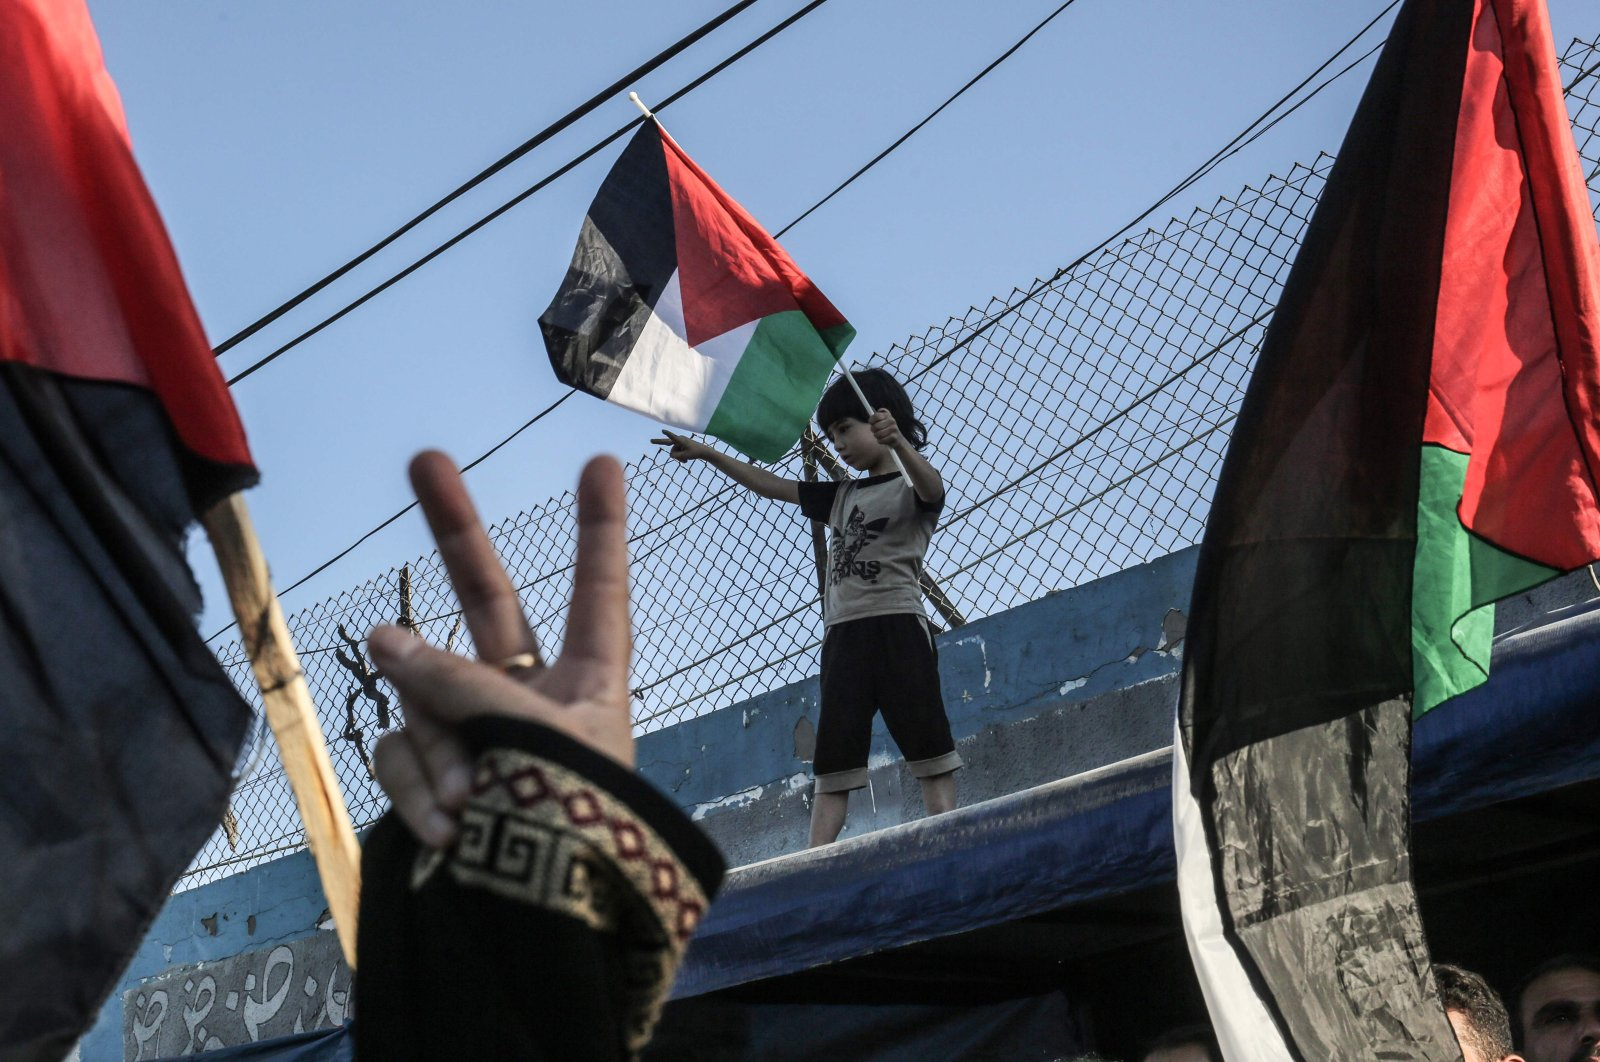 A Palestinian boy waves a national flag during a demonstration against Israel's West Bank annexation plans, in Khan Yunis in the southern Gaza Strip, July 2, 2020. (AFP)